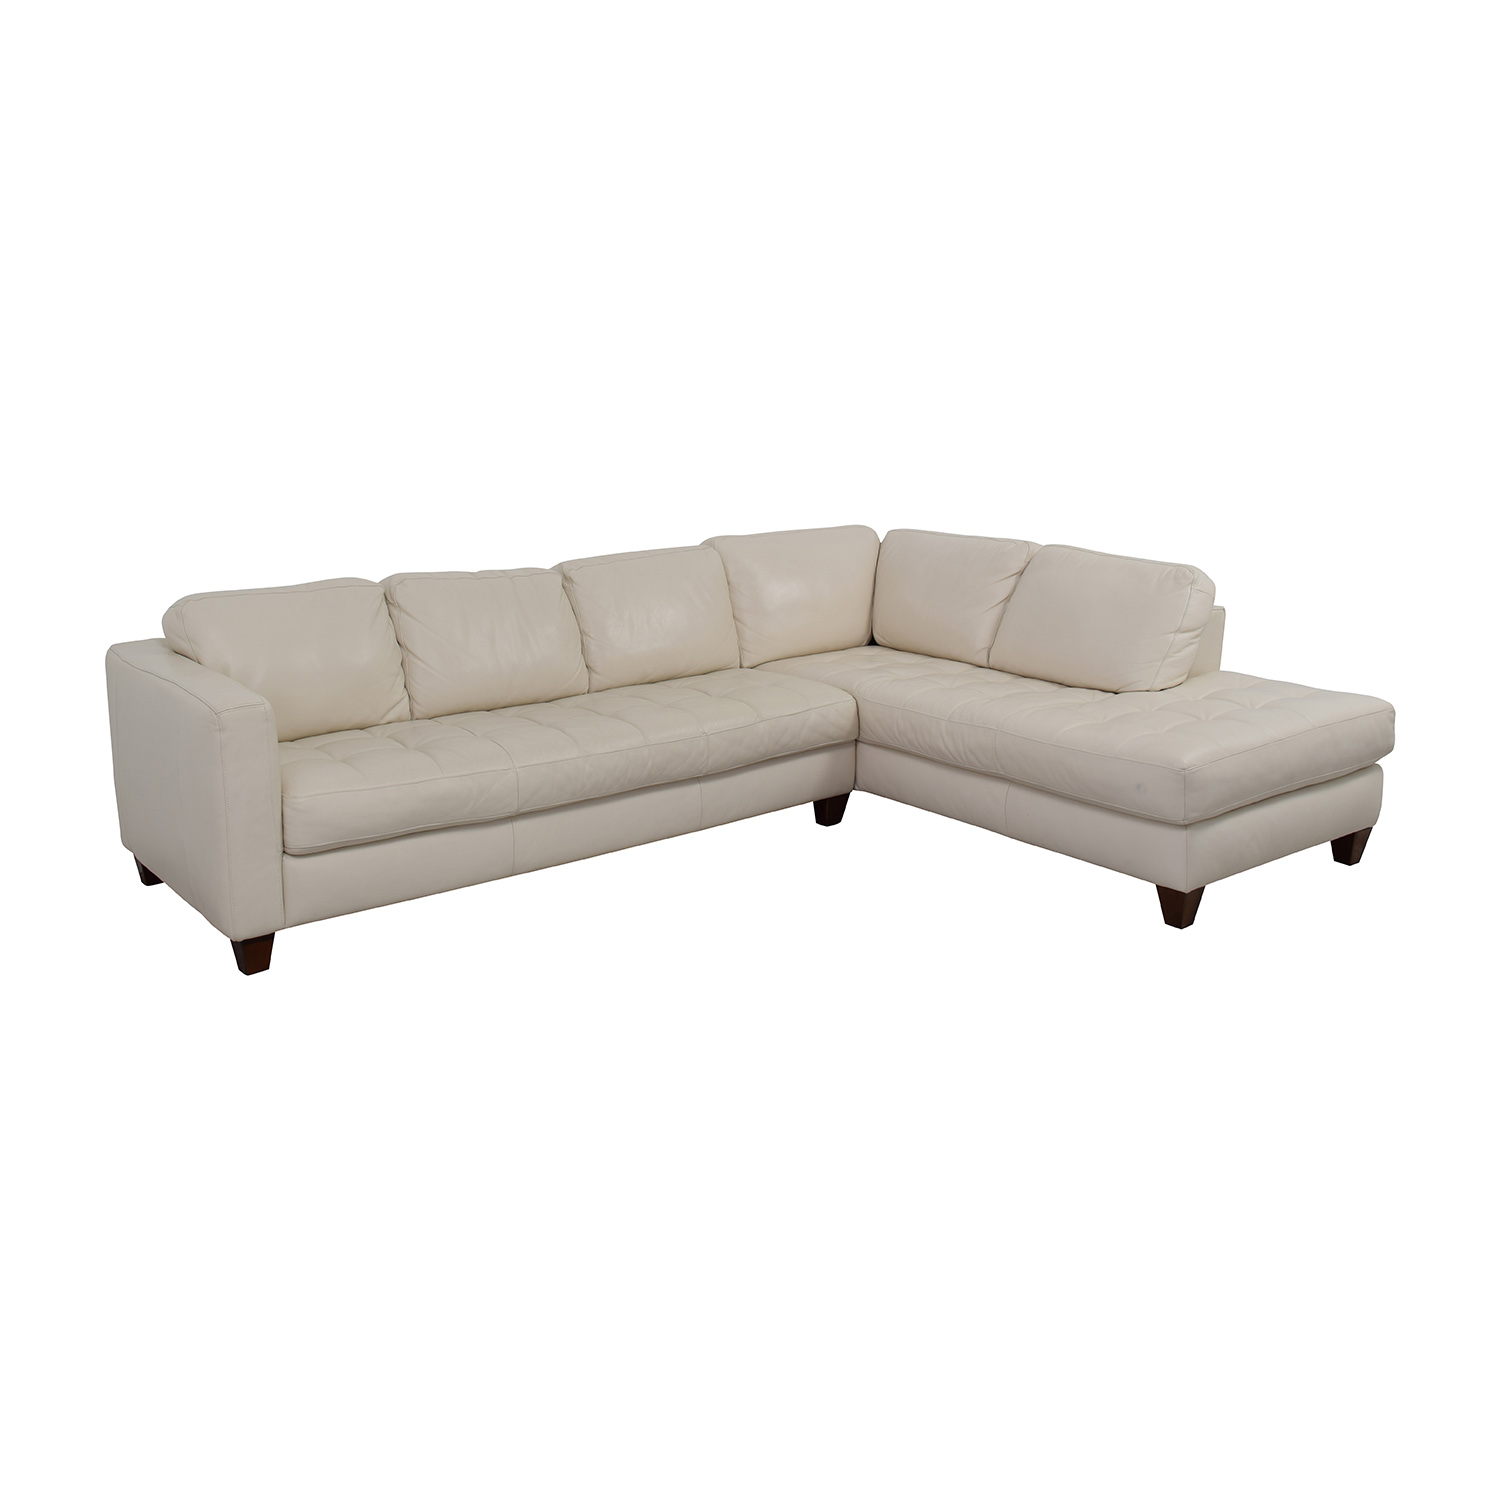 Merveilleux ... Macys Macys Milano White Leather Two Piece Sofa Nj ...